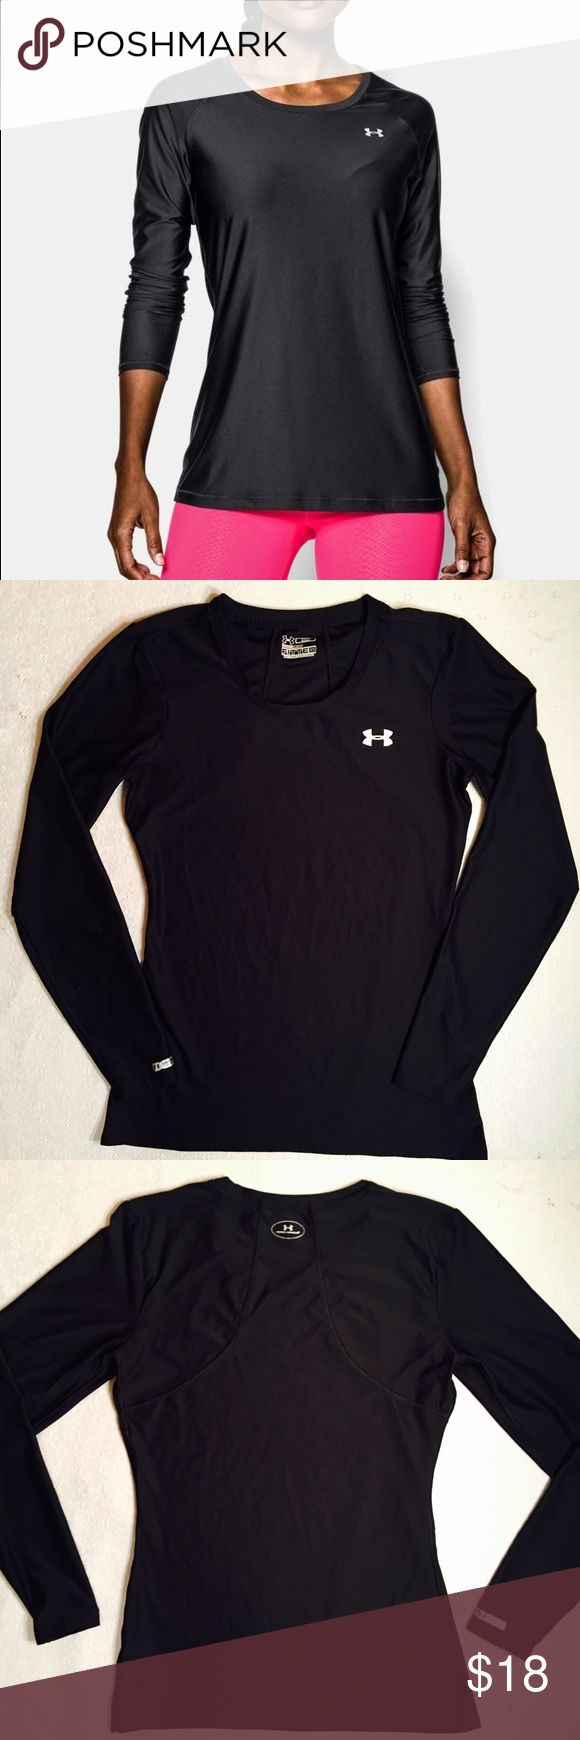 """Under Armour heat gear fitted long sleeve Under Armour fitted heat gear long sleeve top. Excellent condition. Size SM. Armpit to armpit 16 1/2"""". Shoulder to bottom hem 25"""". Black. Under Armour Tops"""